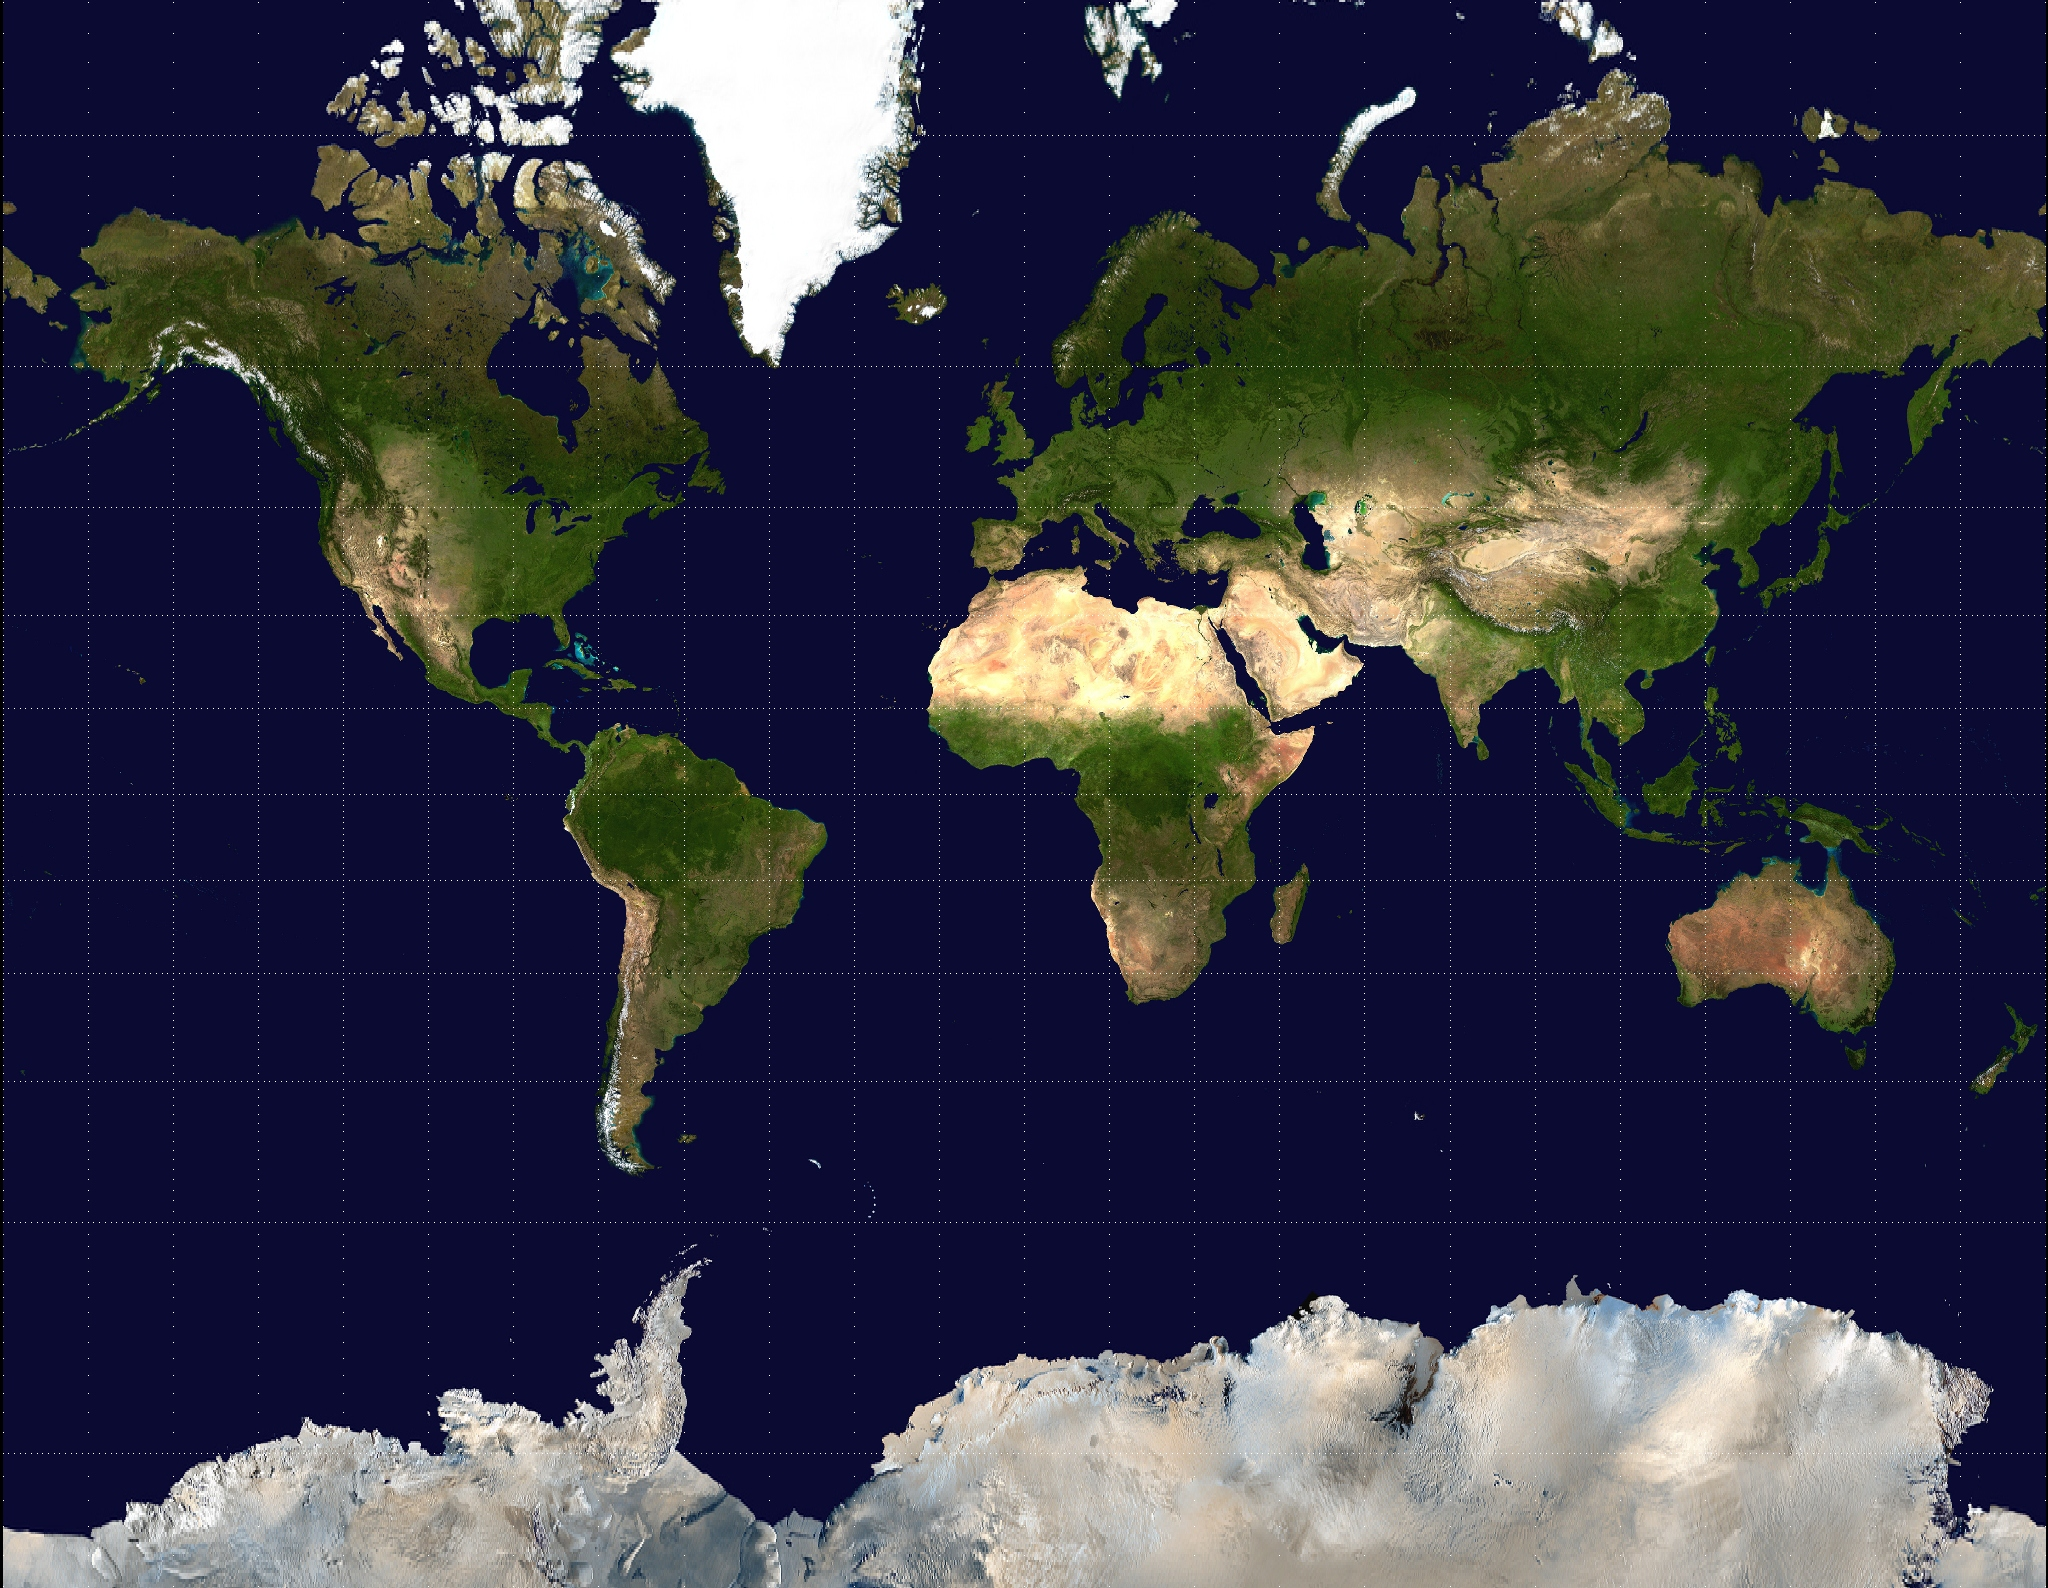 File:Mercator-projection.jpg - Wikipedia, the free encyclopedia